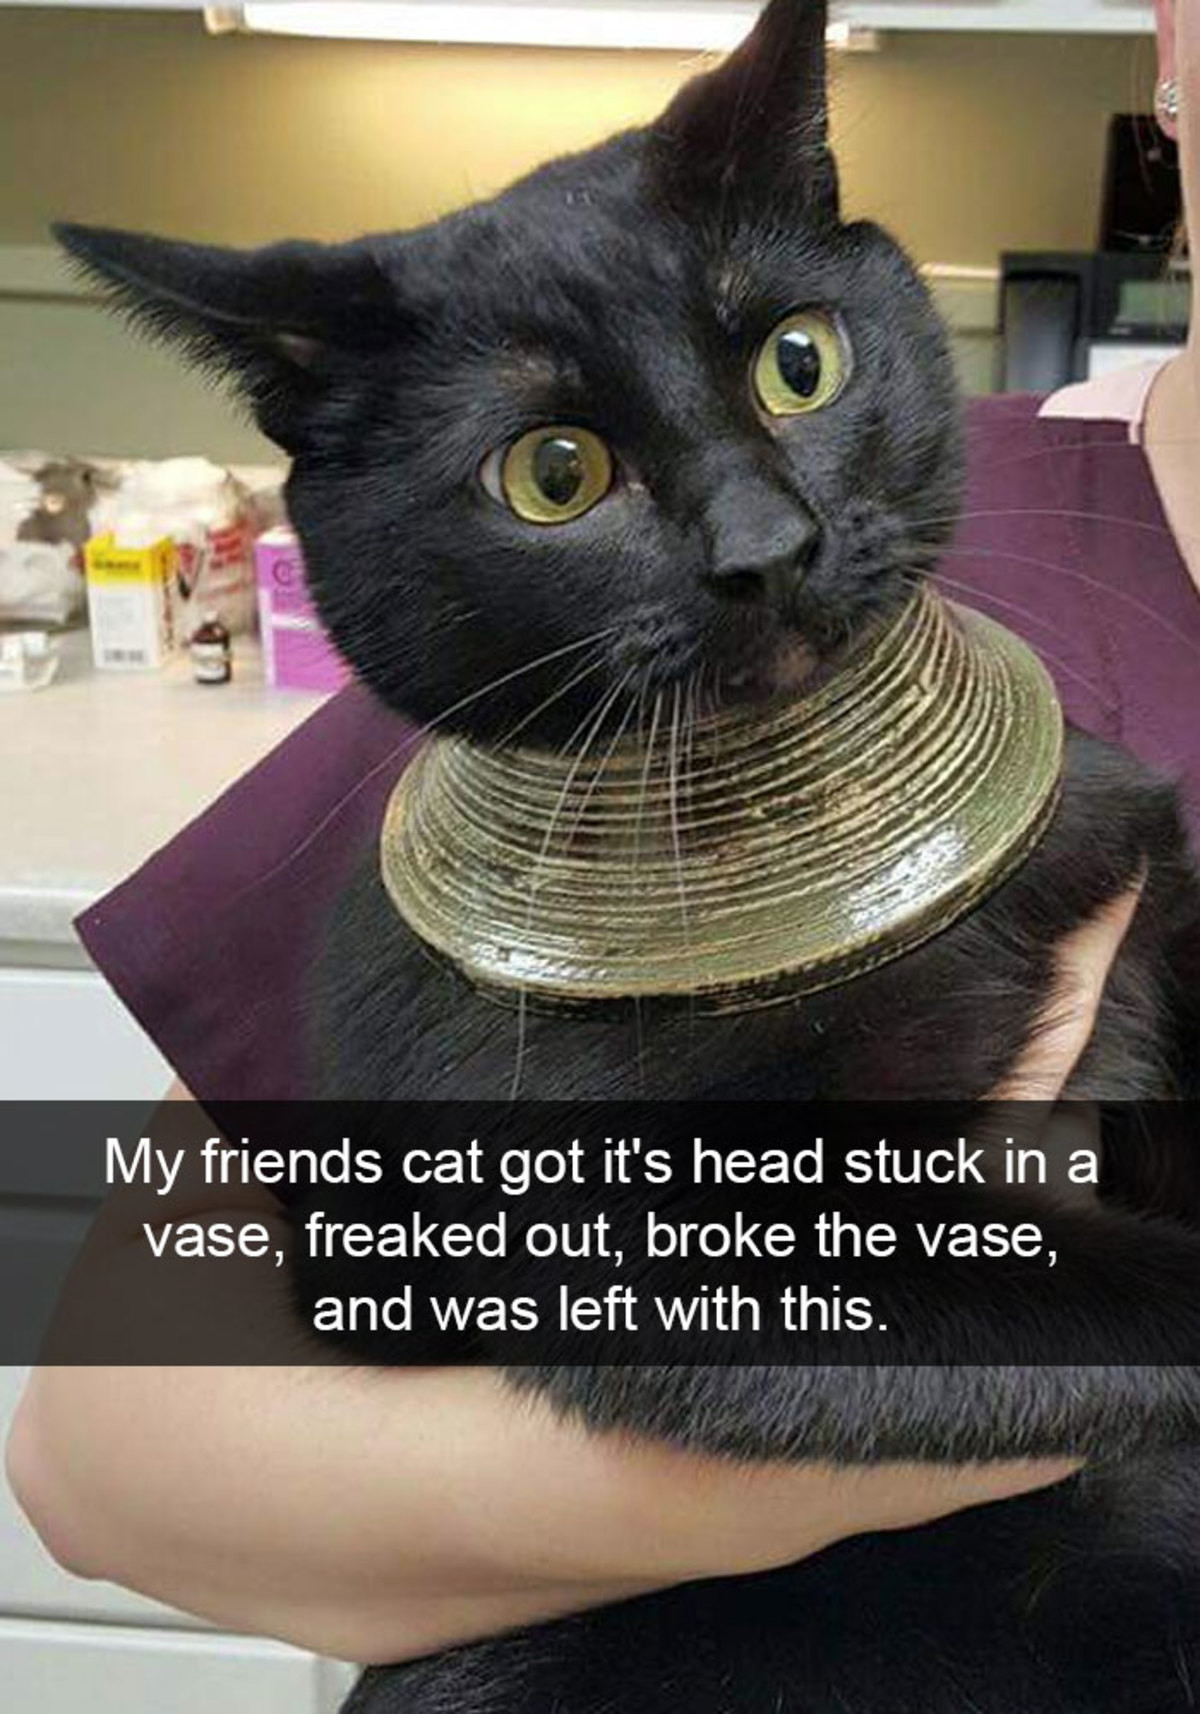 Hilarious Cat Snapchats. join list: CuteKitty (401 subs)Mention History. My friends cat got it' s head stuck in a vase, freaked out, broke the vase, and was lef